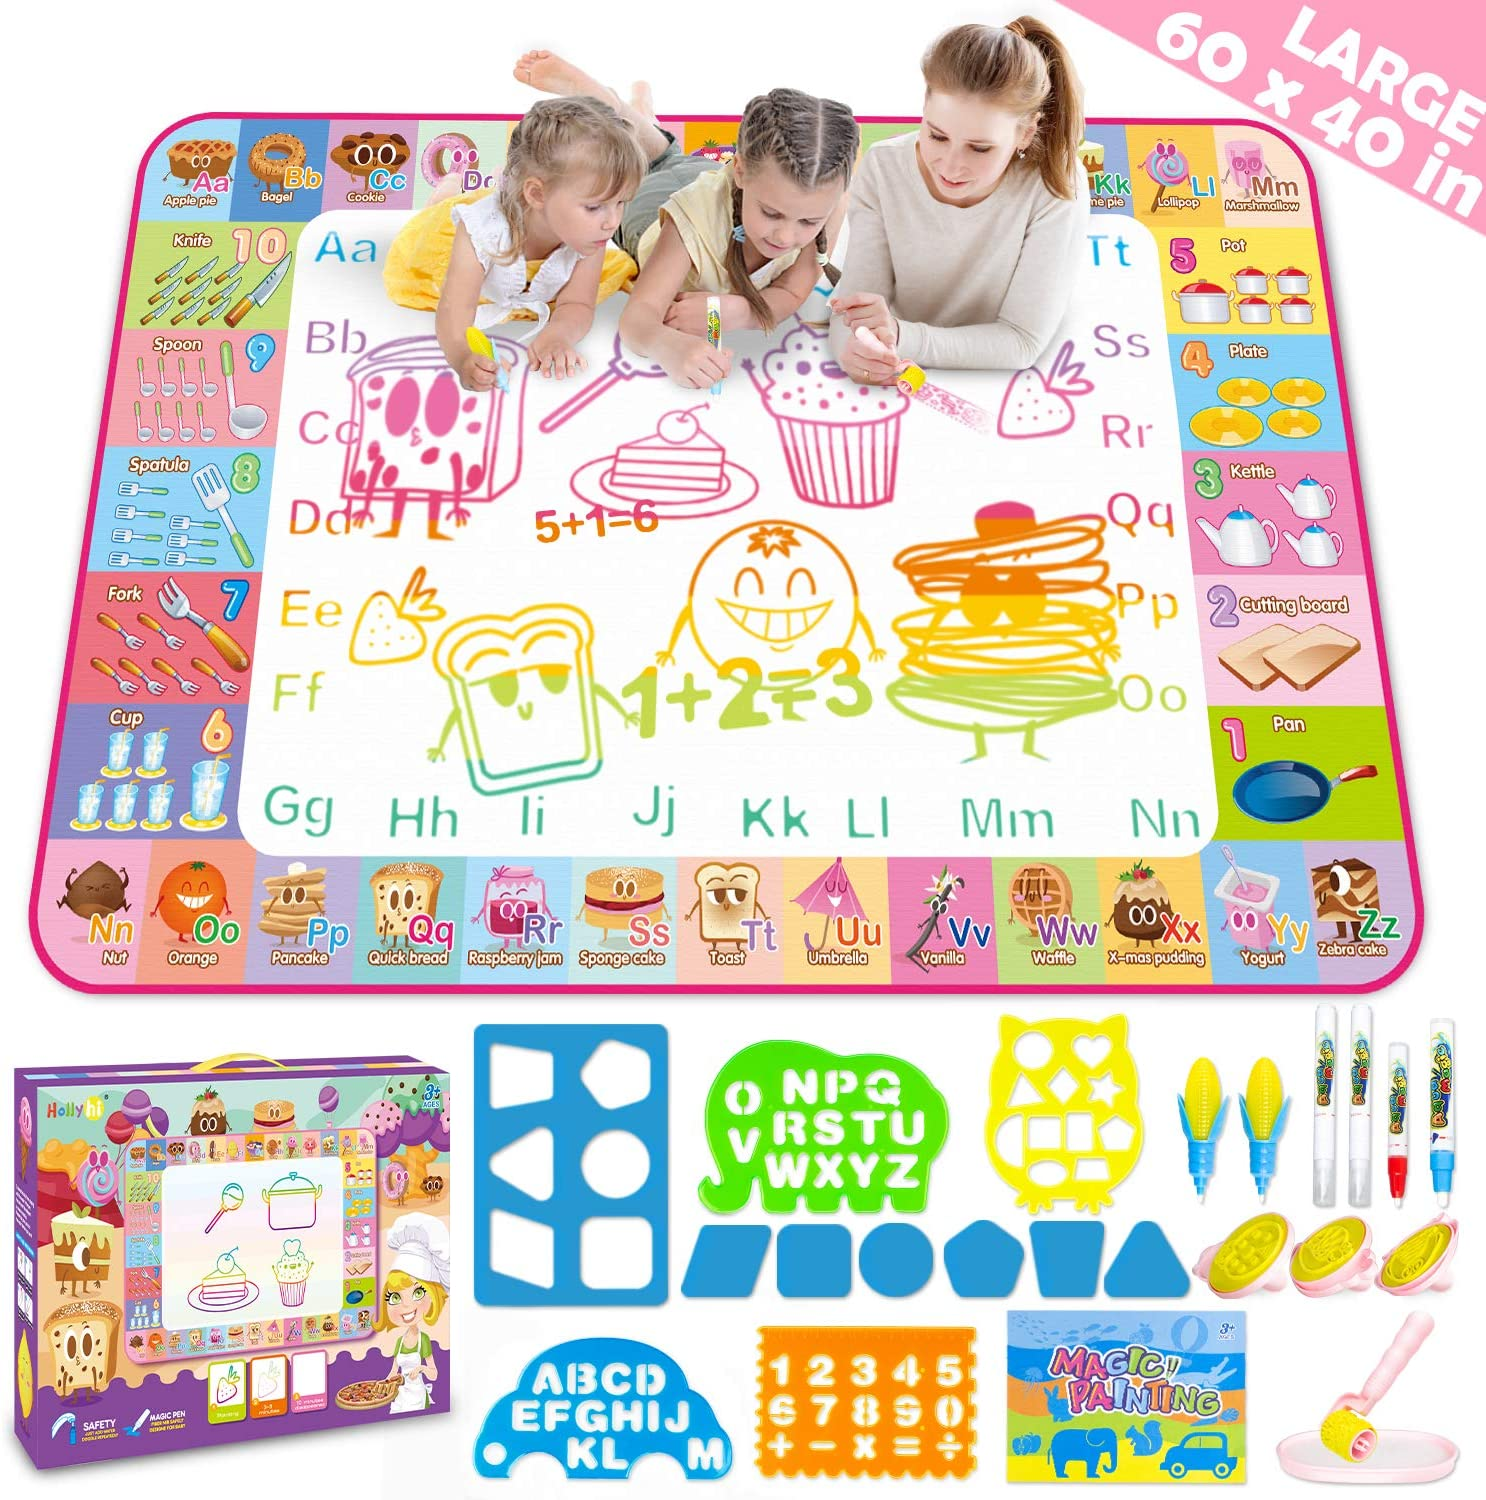 Aqua Magic Doodle Mat,Kids Toddlers Water Drawing Painting Writing Board Toy Educational Toys for Boys Girls,Neon Color Doodle Mat Best Holiday Birthday Gifts for Age 3 4 5 6 7 8 Year Old